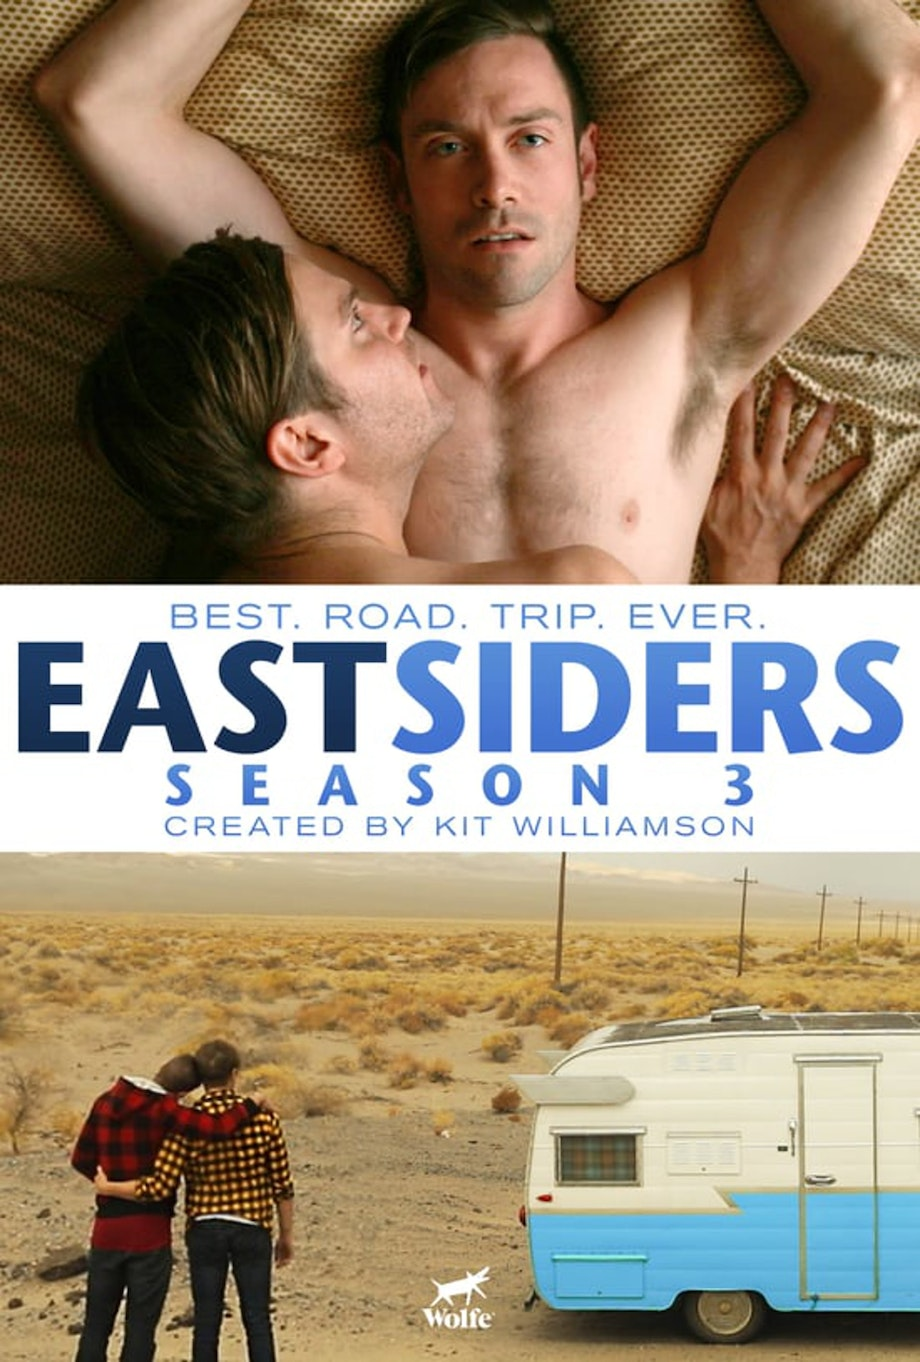 EastSiders: Season 3